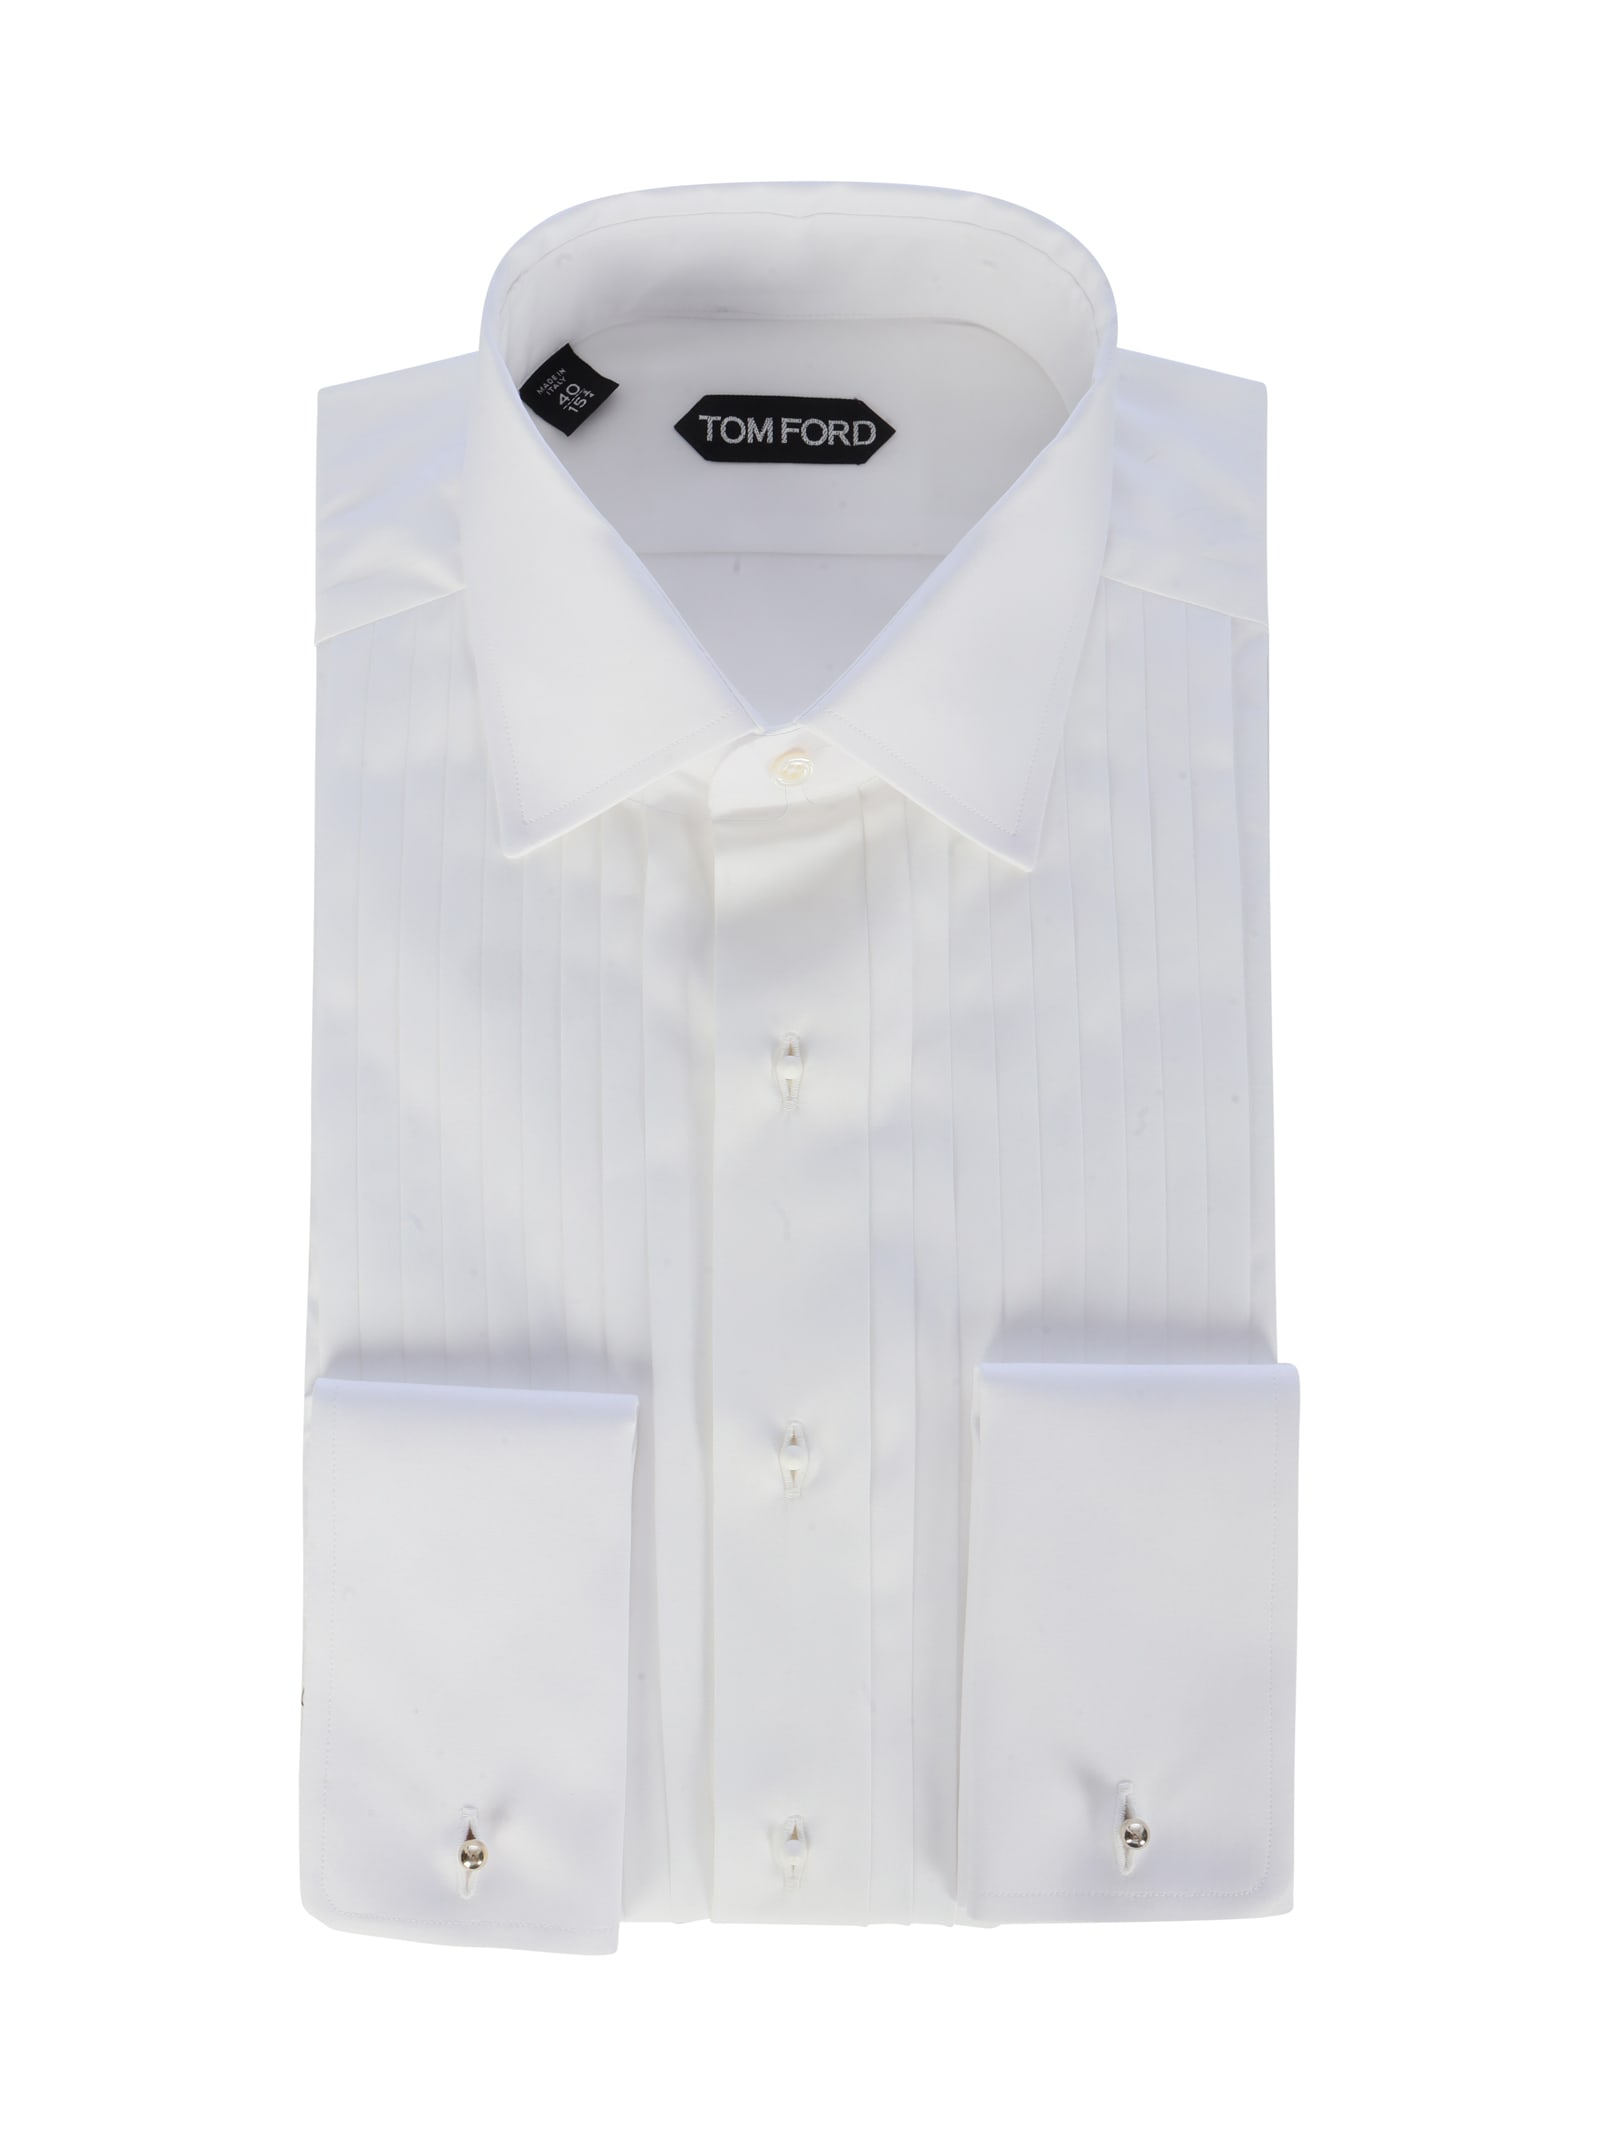 Tom Ford Smoking Shirt